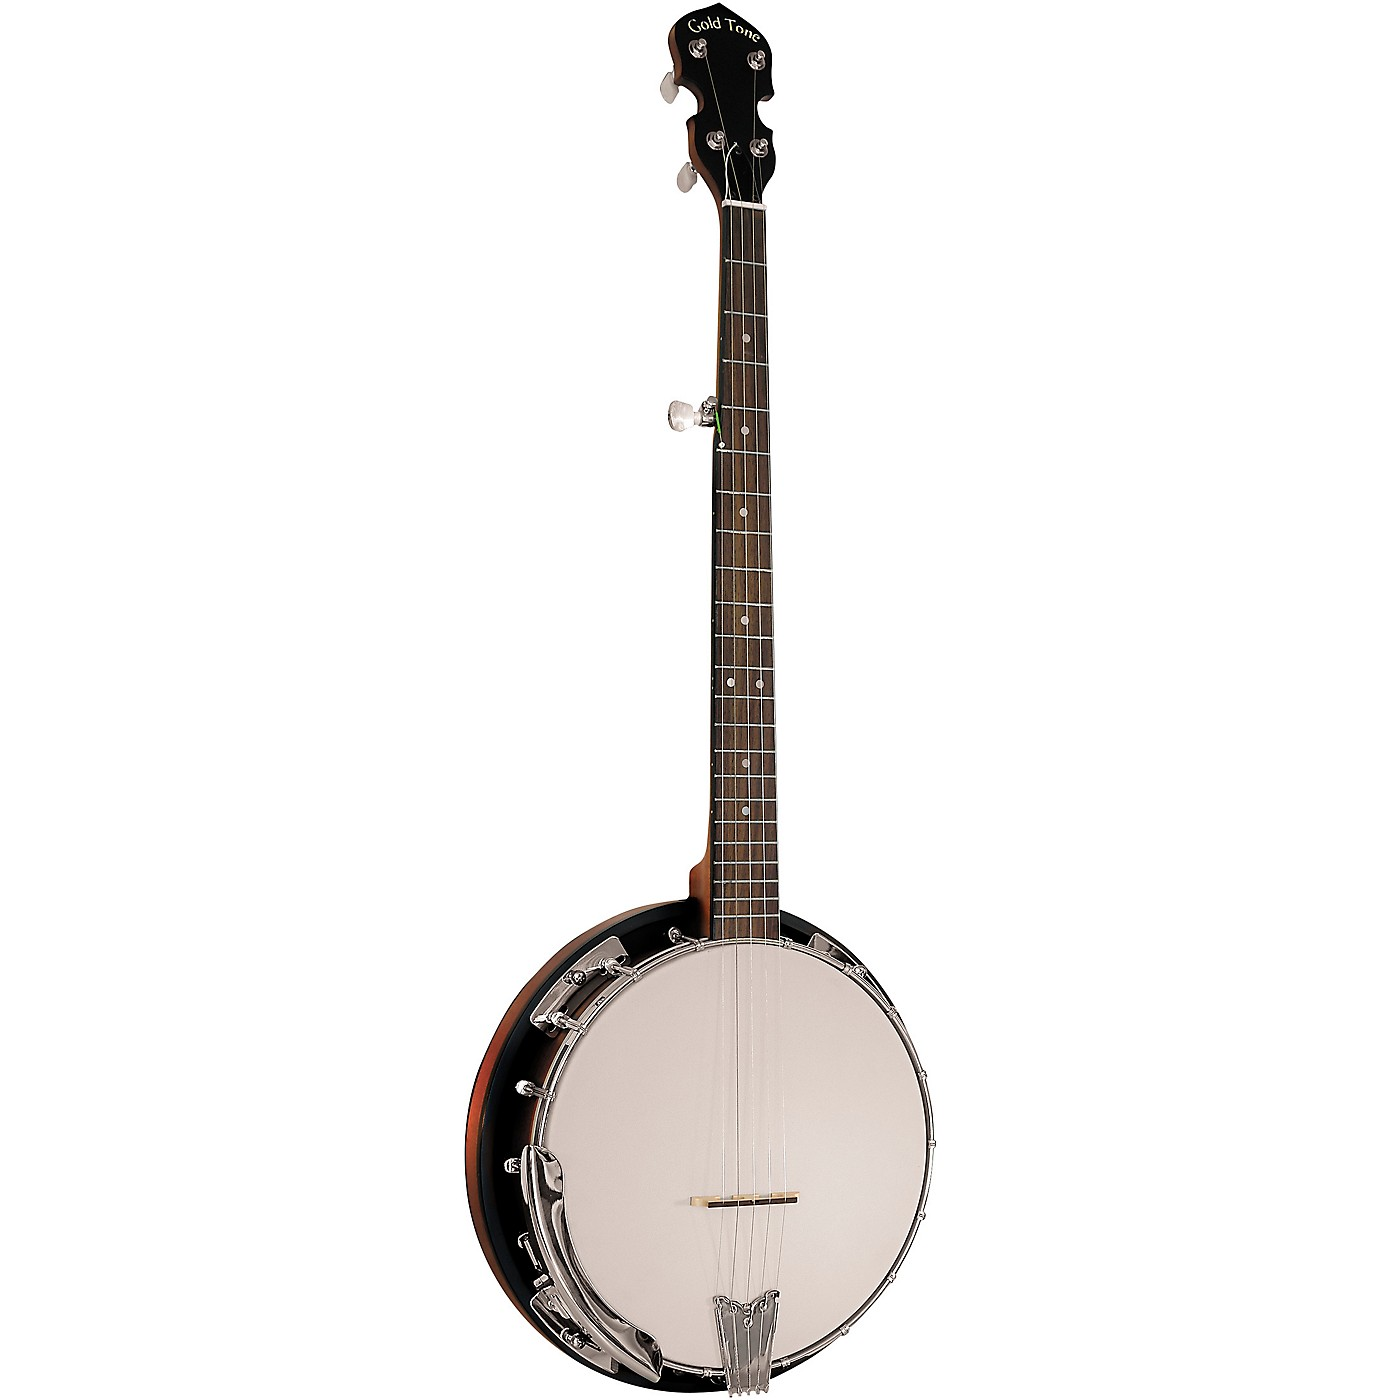 Gold Tone Cripple Creek CC-50RP/L Left-Handed Resonator Banjo With Planetary Tuners and Gig Bag thumbnail